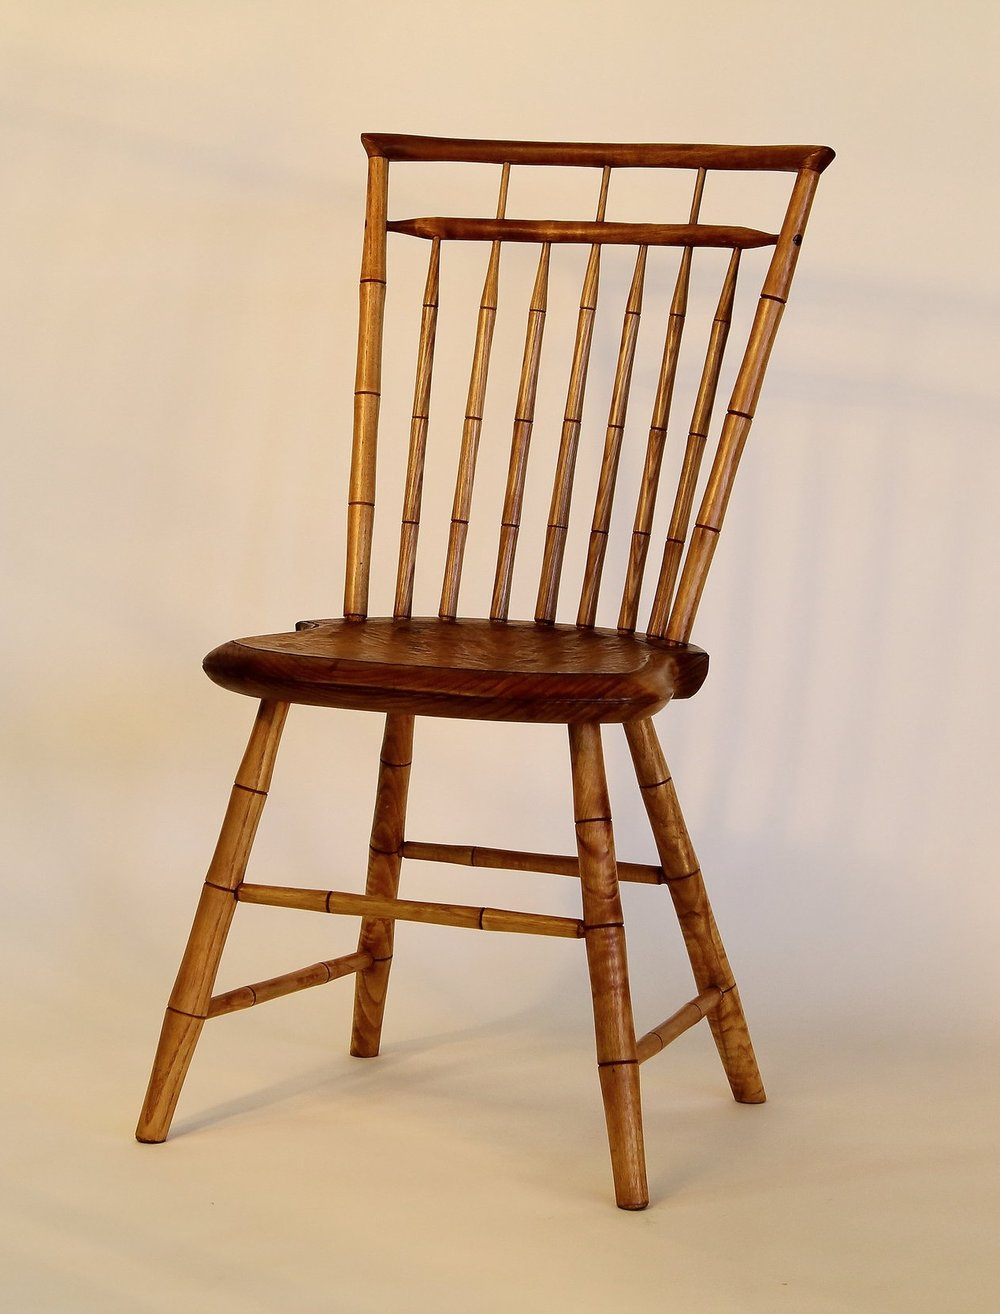 Double Rodback Windsor Chair